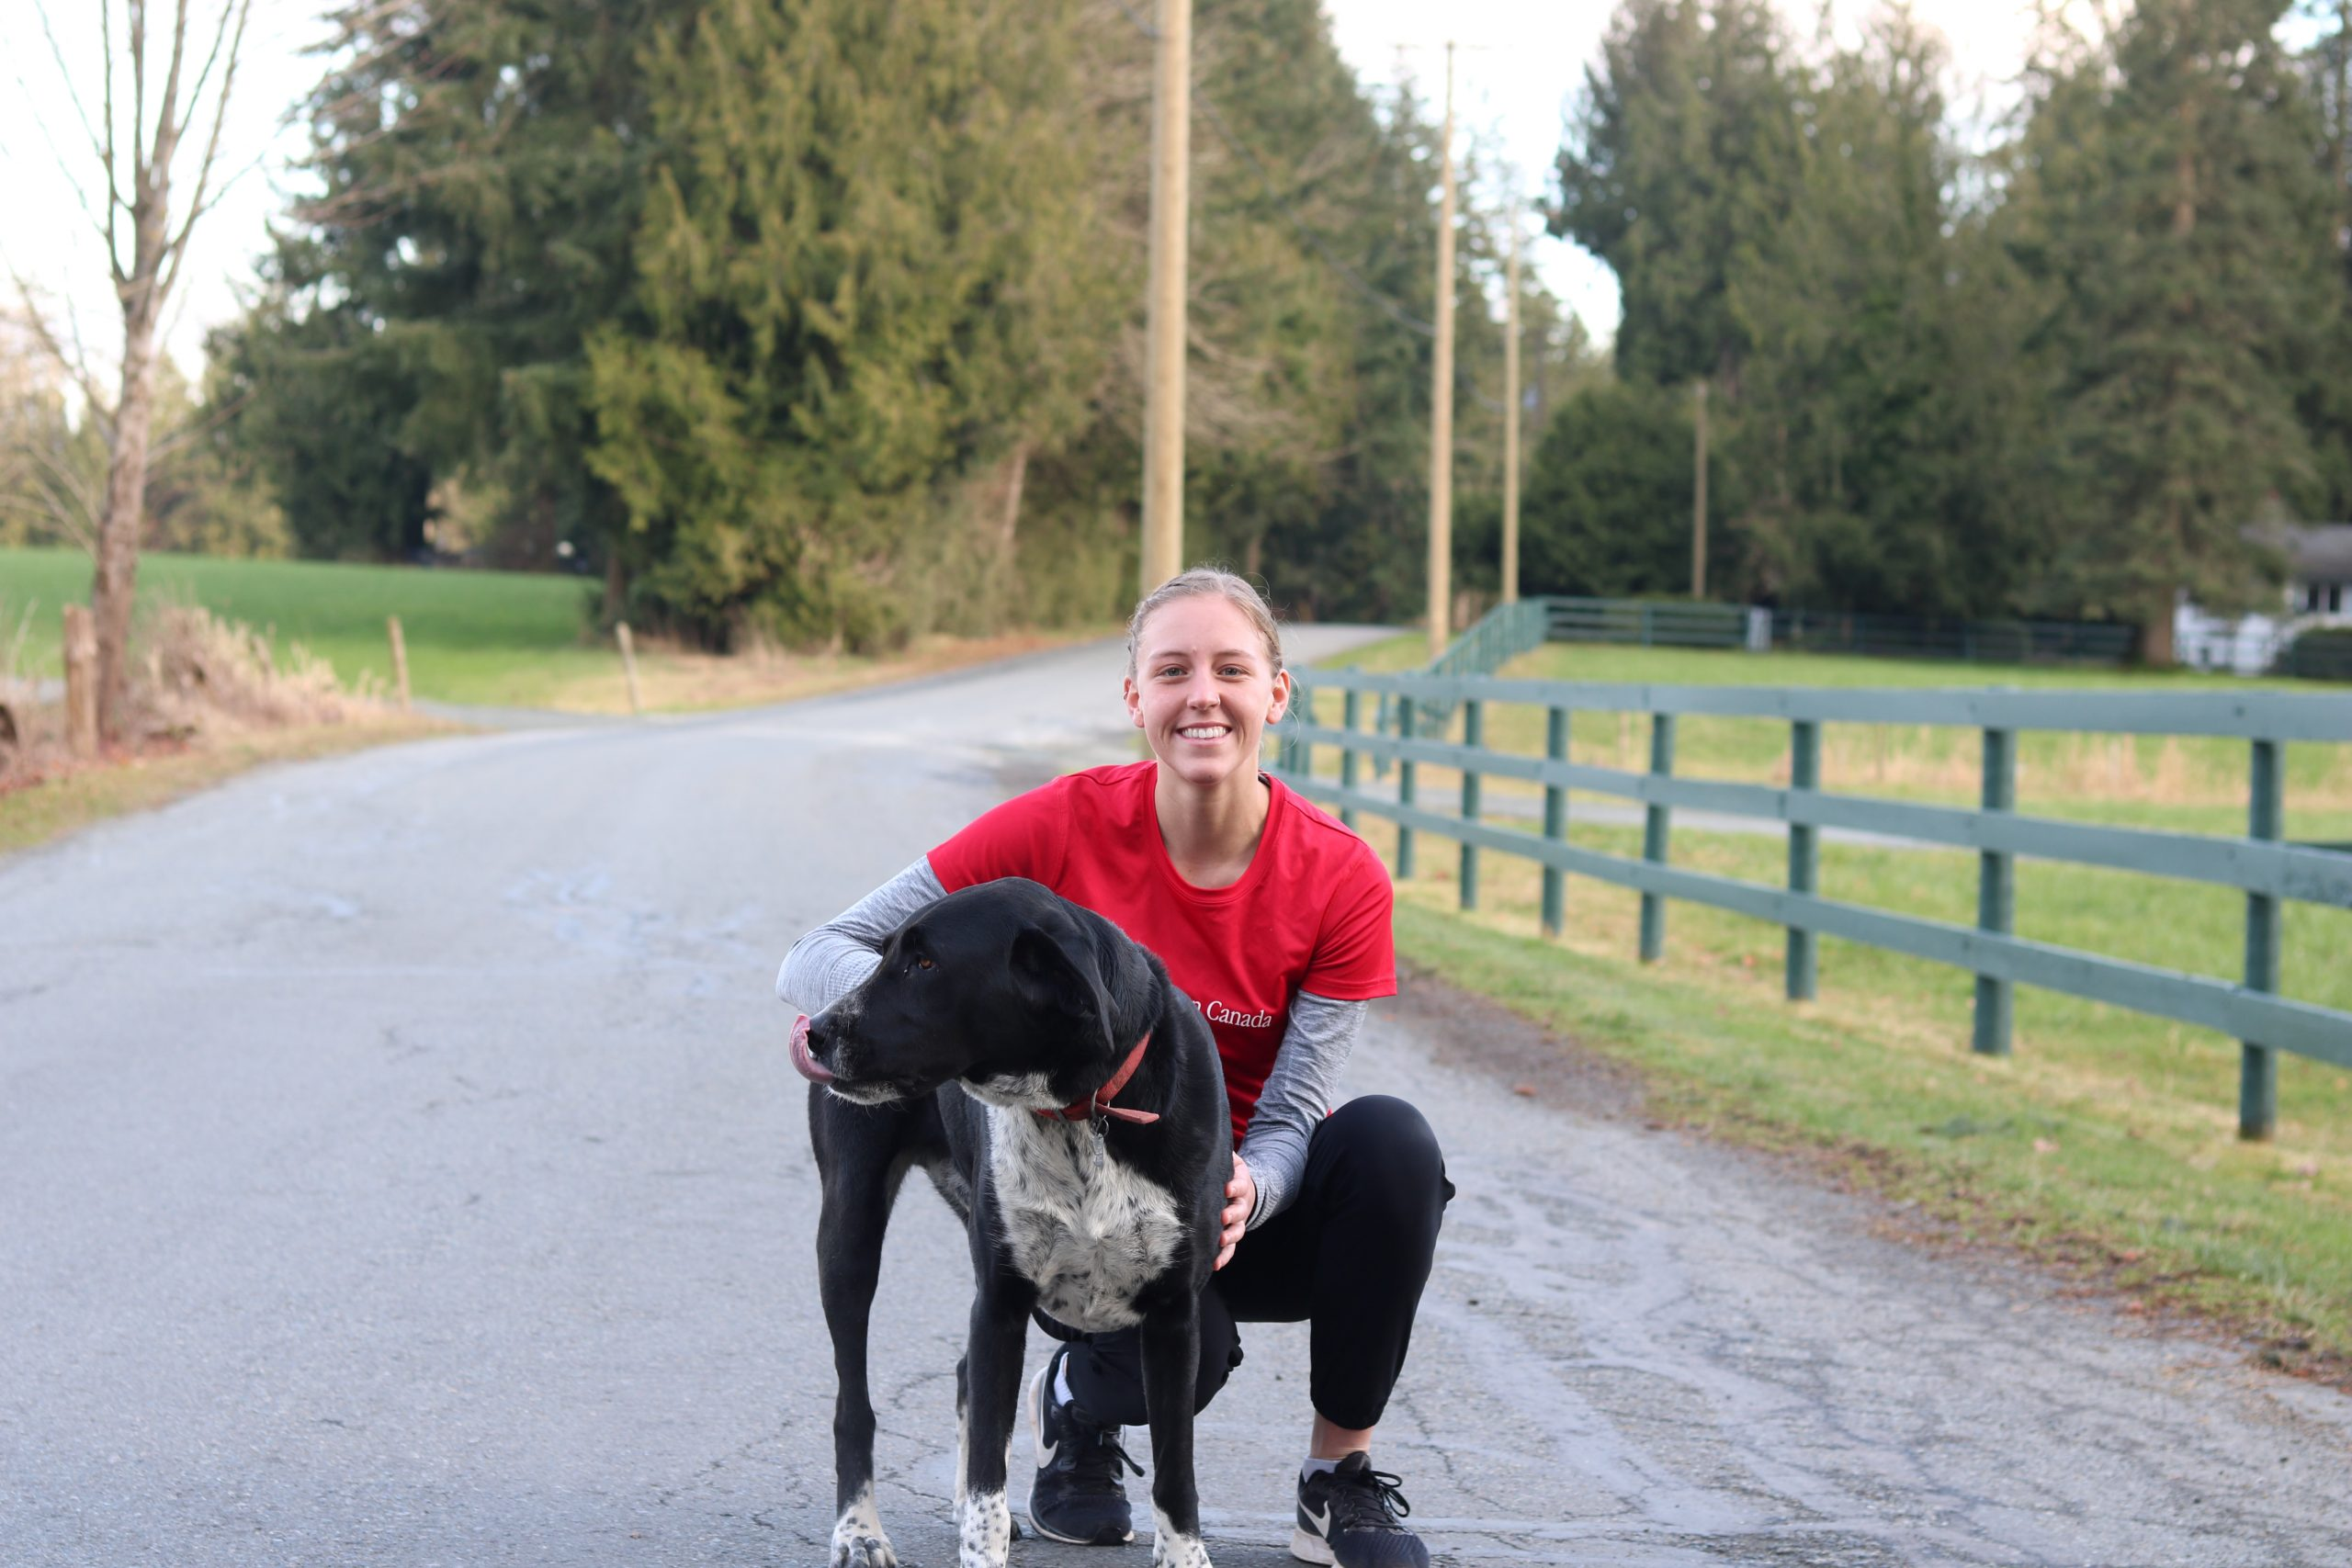 Danielle Groenedijk wearing balck leggings and a red shirt reading 'Parkinson Canada' crouched down on the road beside a grassy field to put her arms around her medium height, black and white dog, Bo